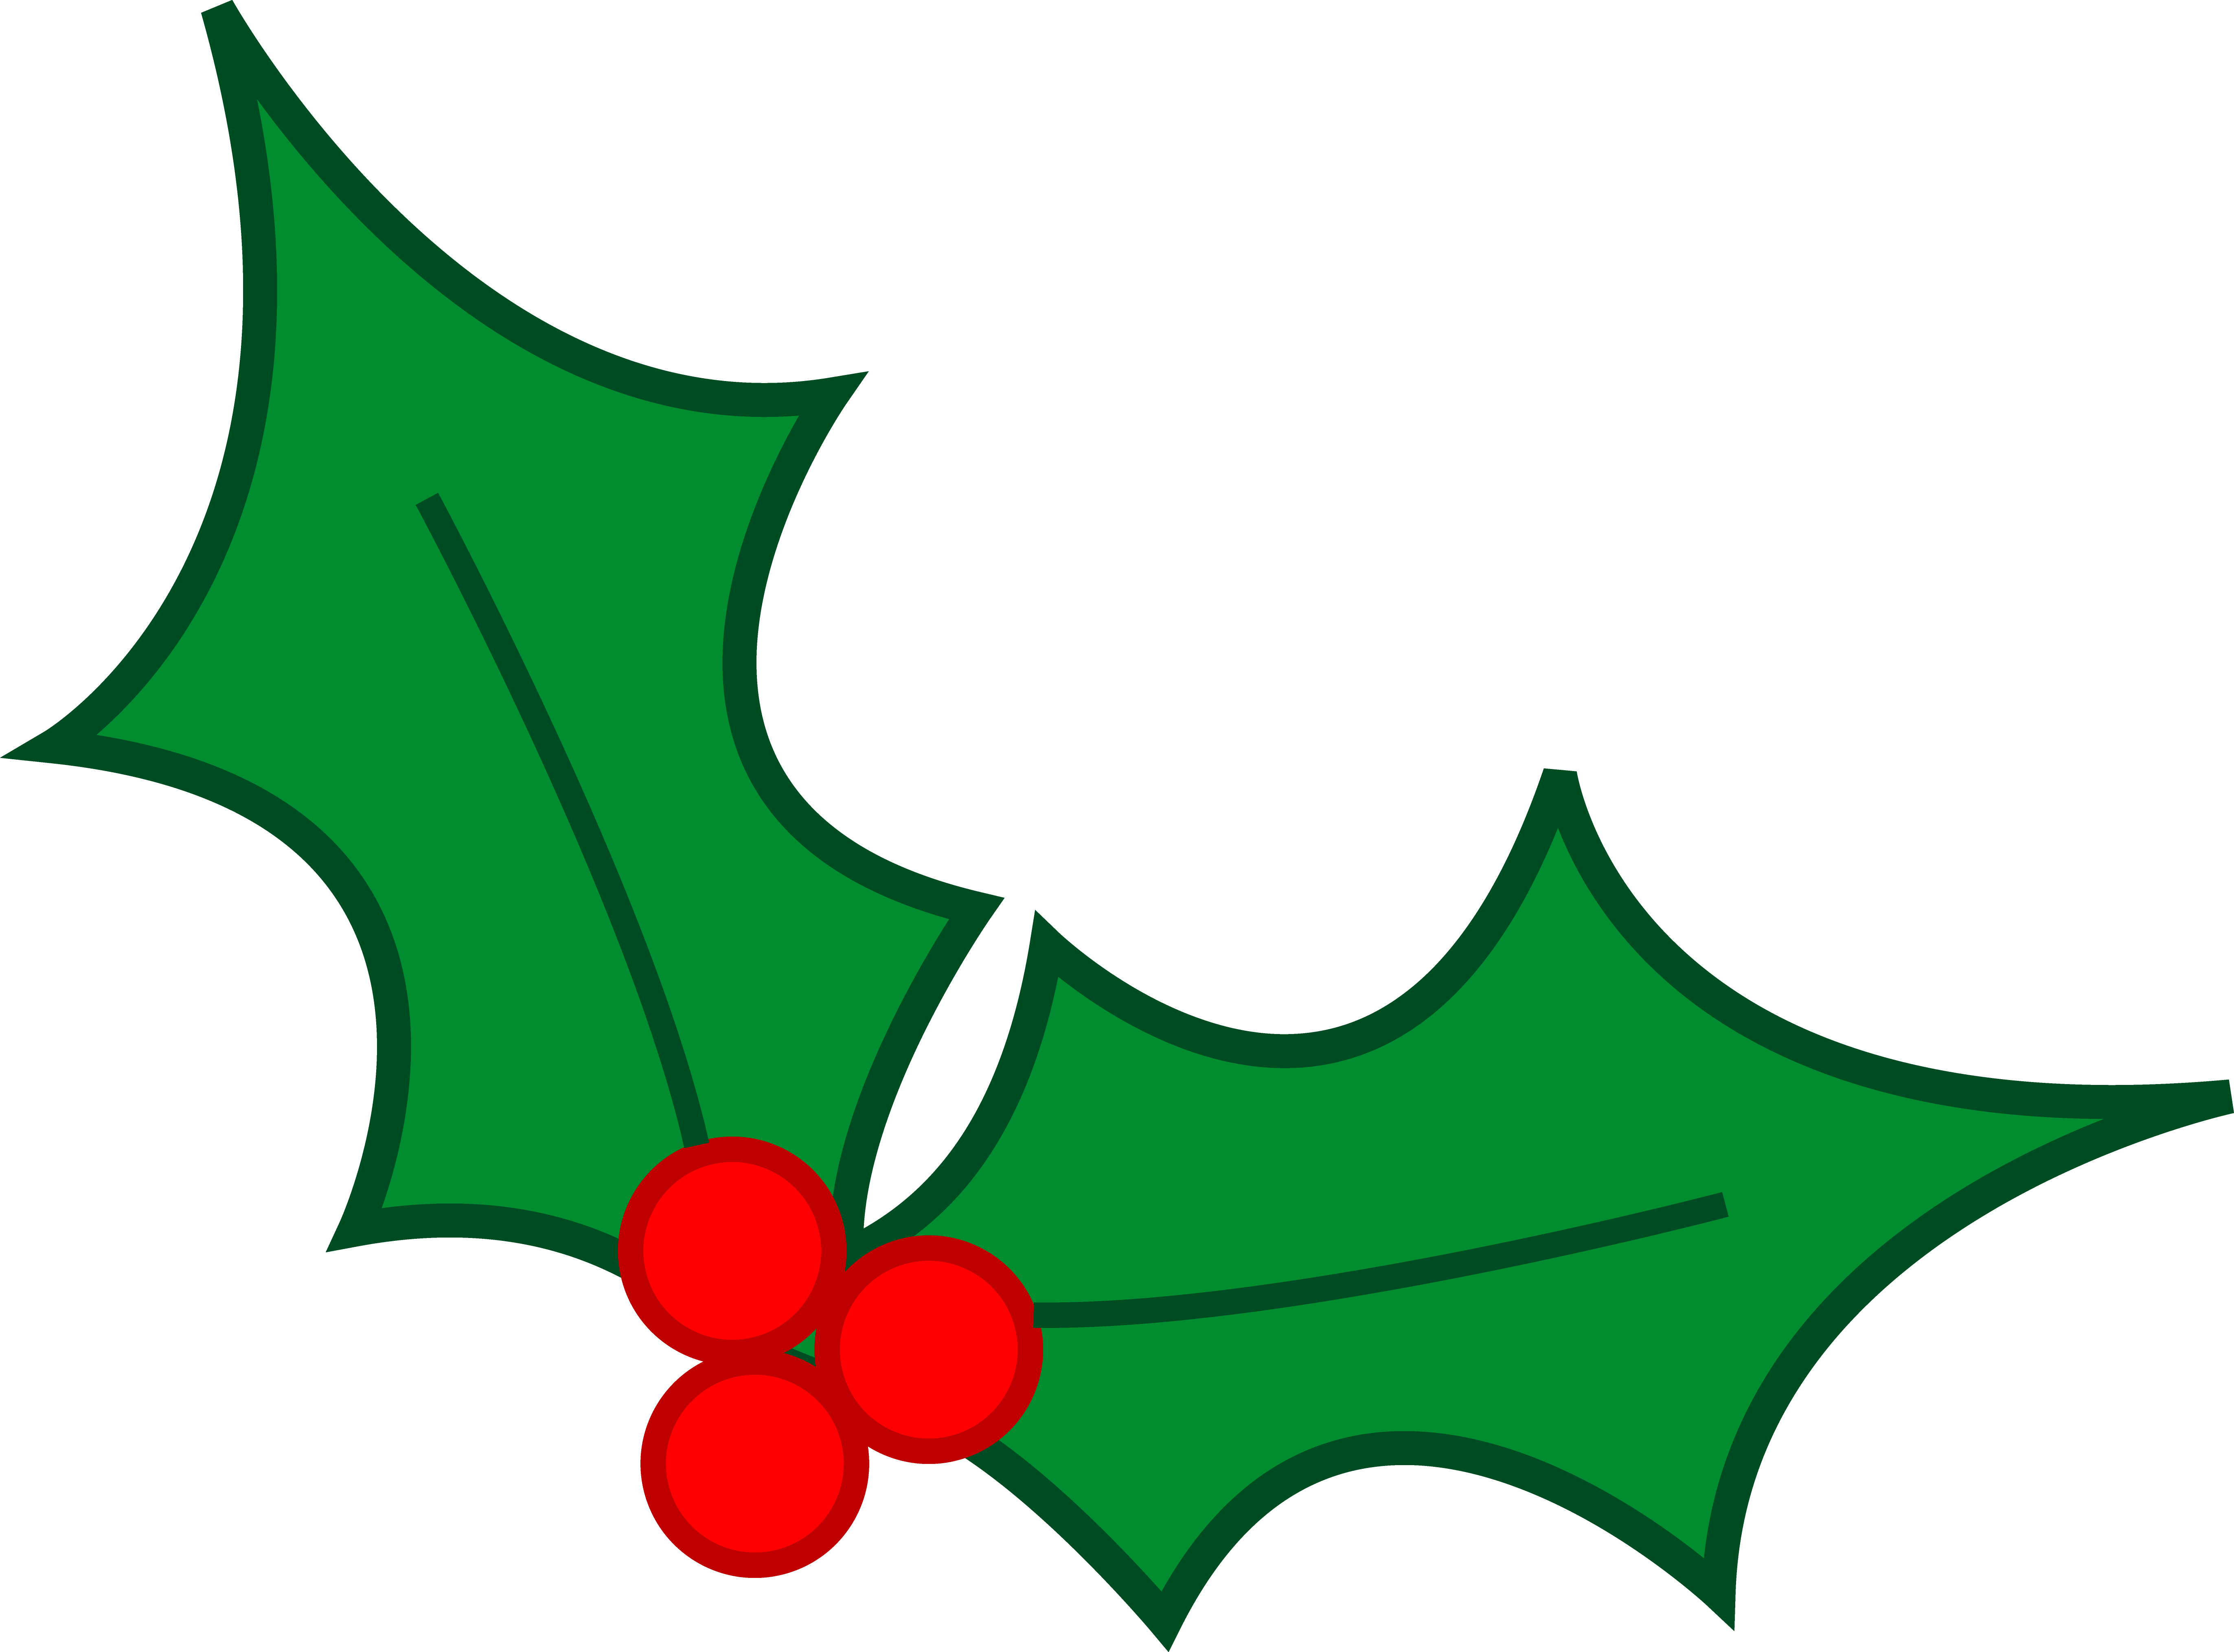 5487x4058 Collection Of Holly Clipart Transparent Background High